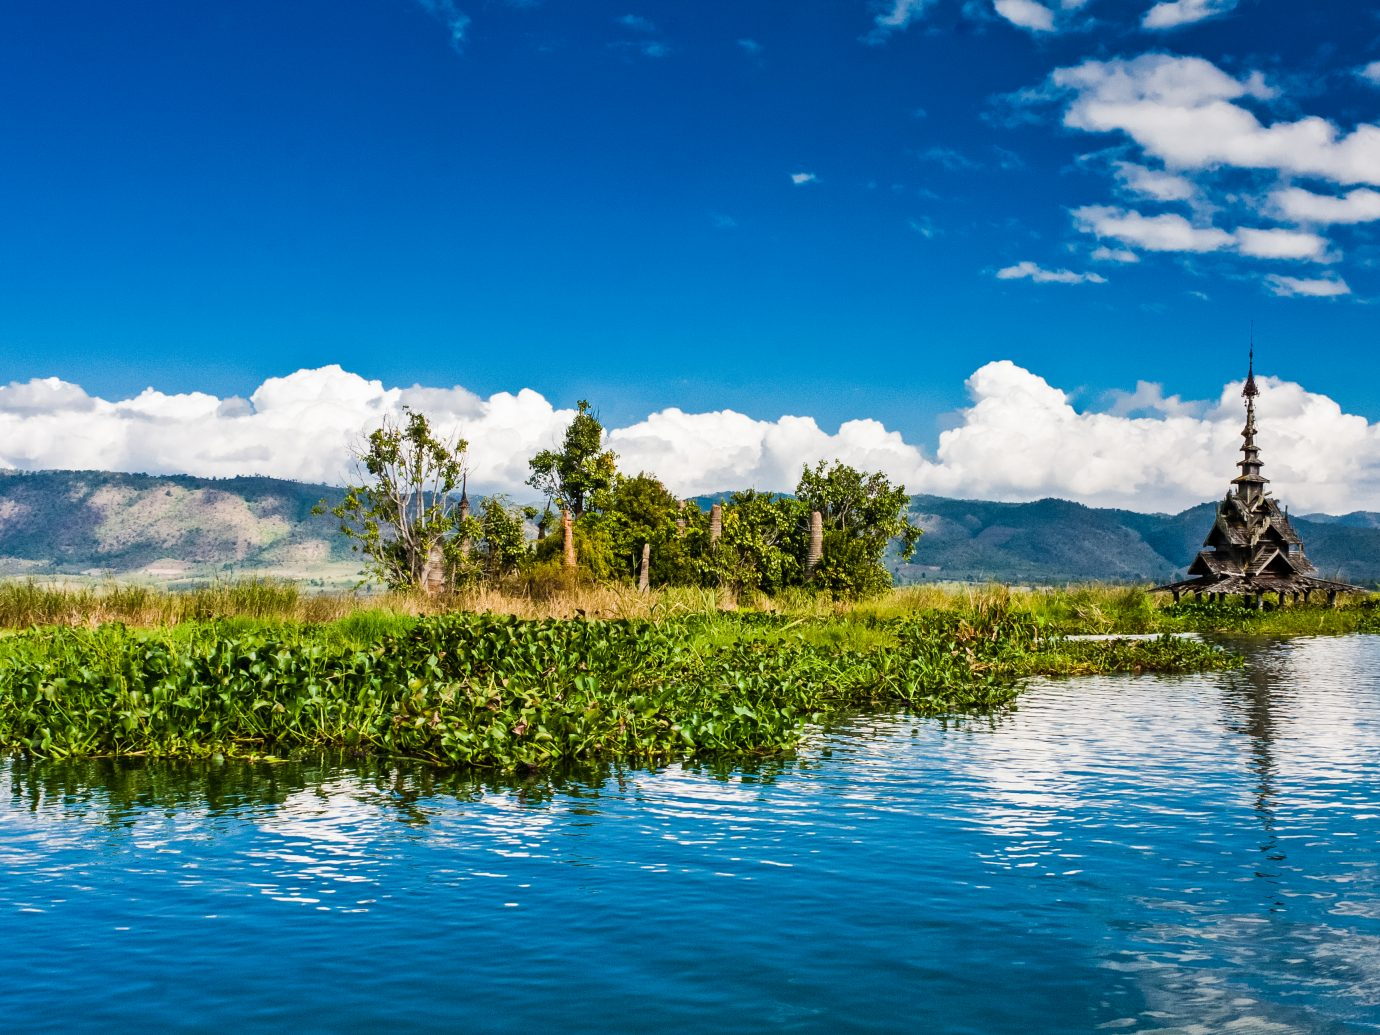 One of the historical and tourist landmarks of the Inle Lake